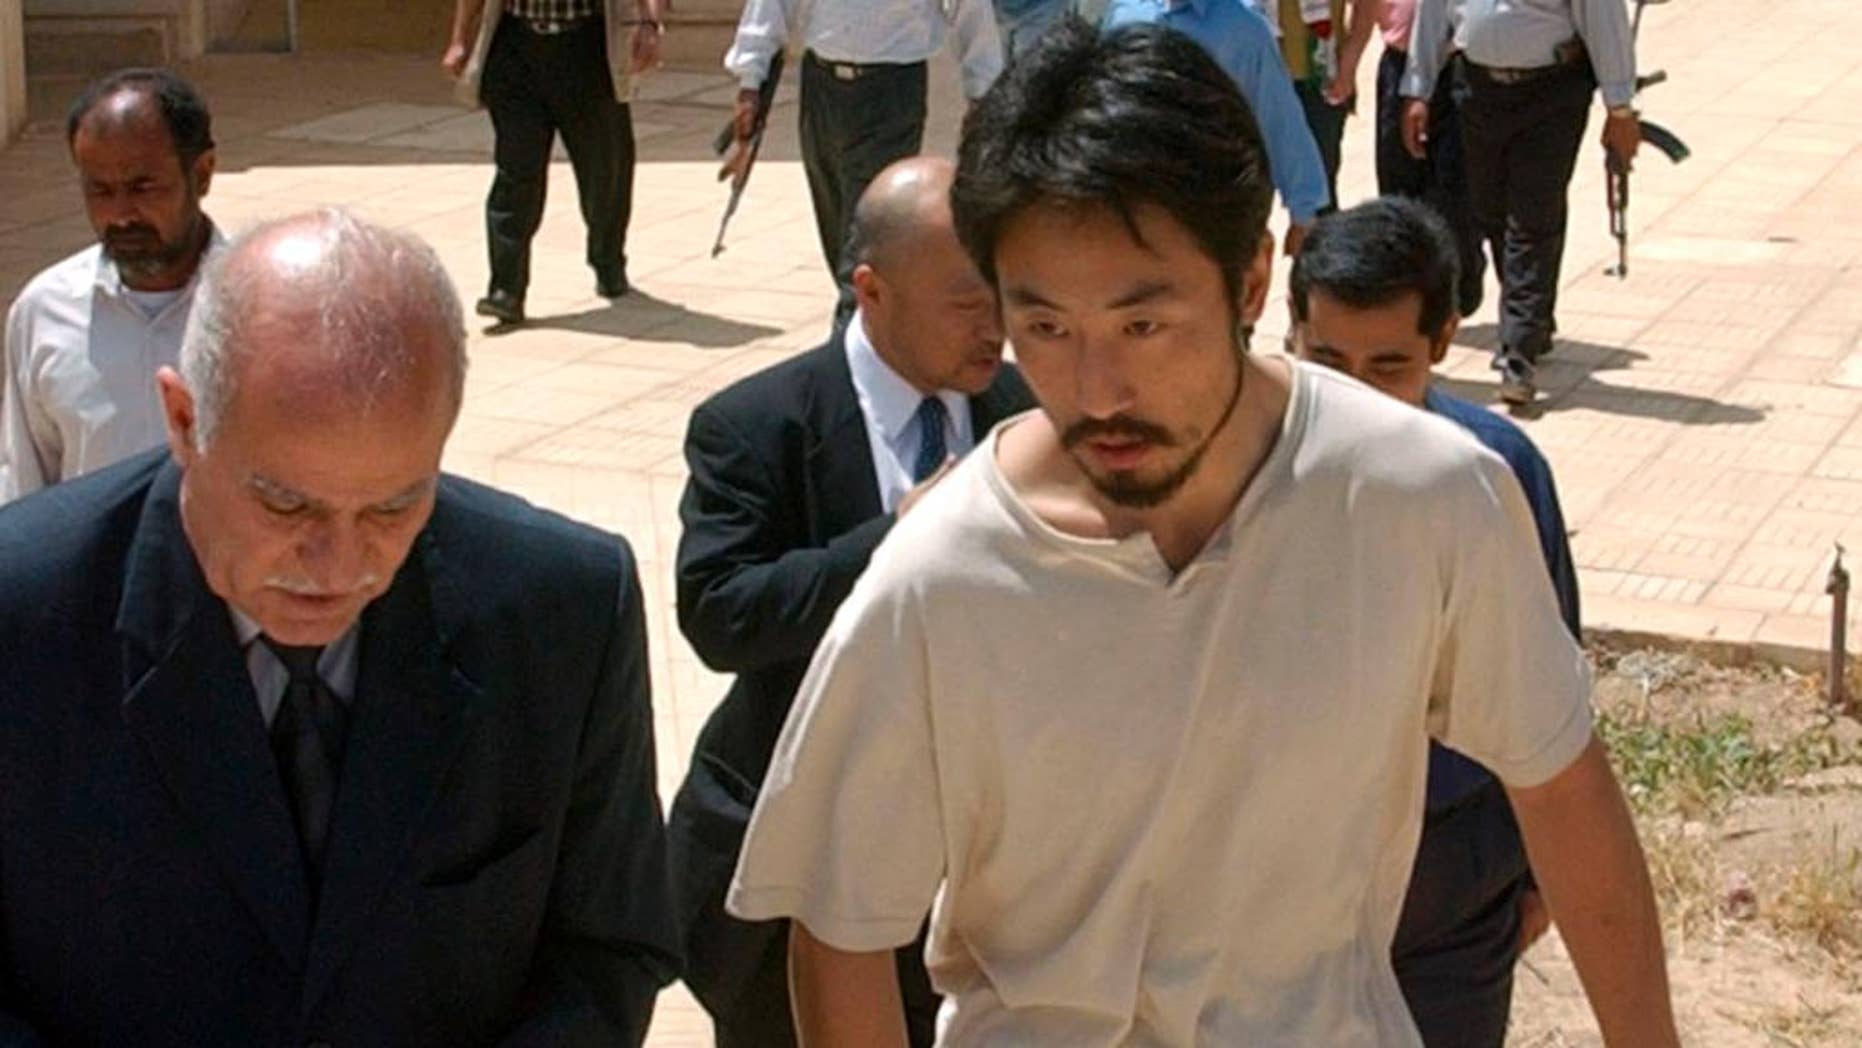 FILE - In this April 17, 2004 file photo, Japanese freelance journalist Jumpei Yasuda, right, is escorted after being released at Umm Al-Qura mosque in Baghdad, Iraq.  Worries are growing about the whereabouts of the freelance Japanese journalist, last heard from late June, 2015,  in Syria. It is not known why Yasuda, who has been reporting on the Middle East since 2002, has not been in contact or if he has been taken captive in the war-torn nation. (AP Photo/Muhammed Muheisen, File)